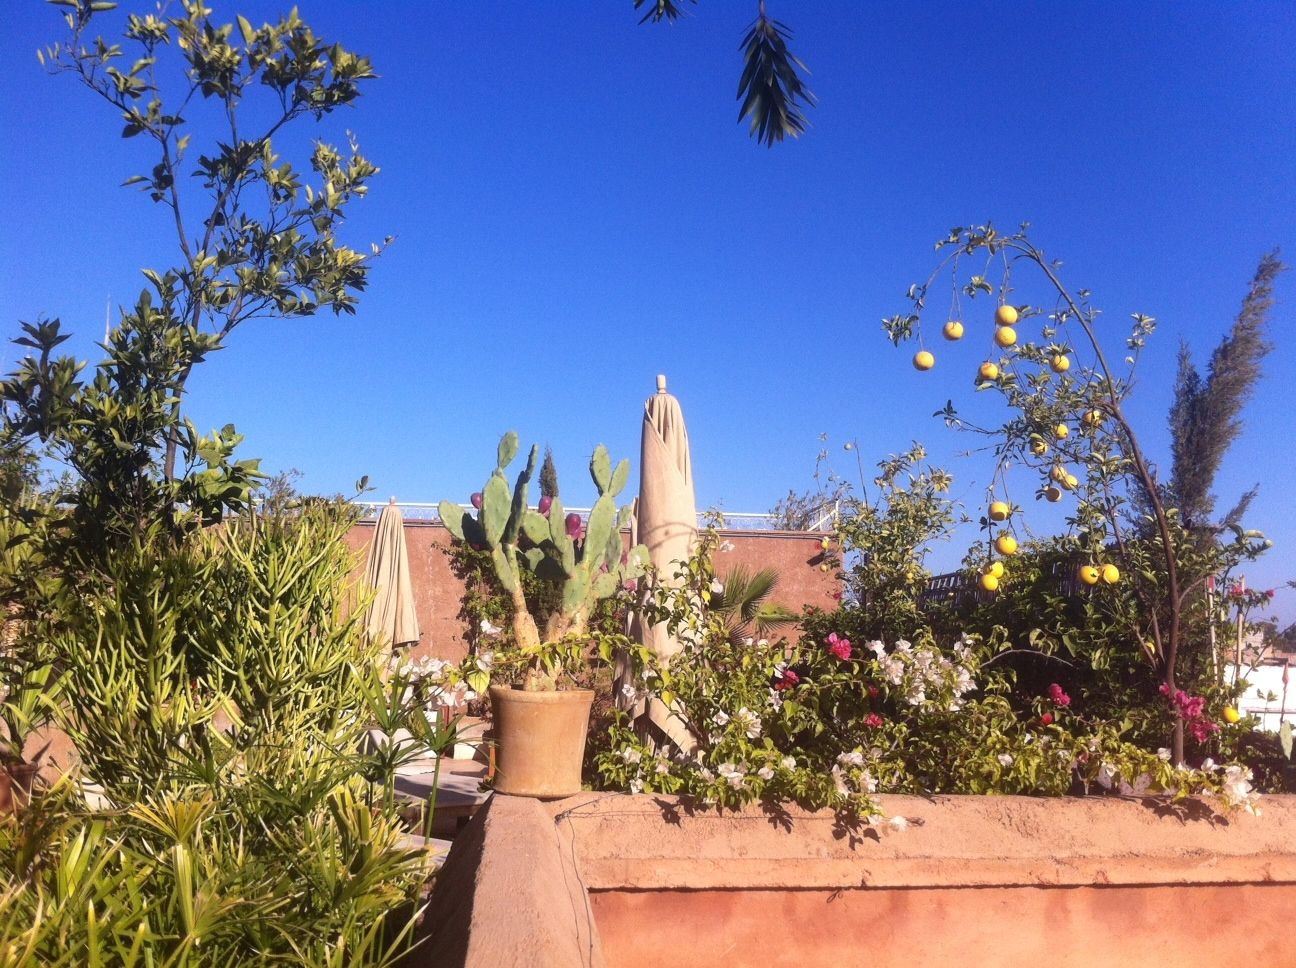 amazing blue sky of marrakesh with splendid winter sun and great